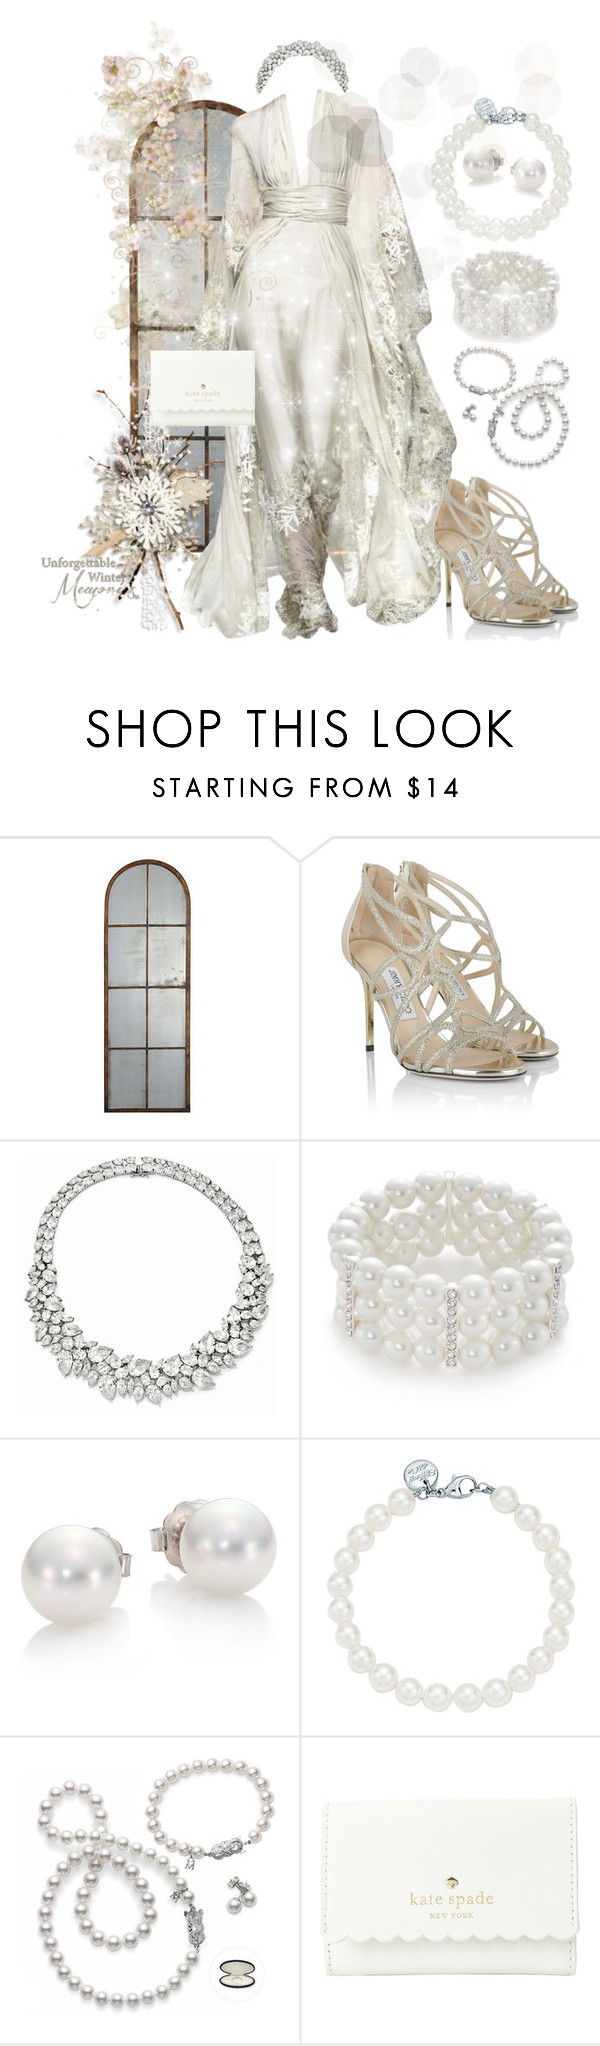 """""""Untitled #502"""" by annsofisweden ❤ liked on Polyvore featuring Uttermost, Zuhair Murad, Jimmy Choo, Kim Rogers, Mikimoto, Tiffany & Co. and Kate Spade"""